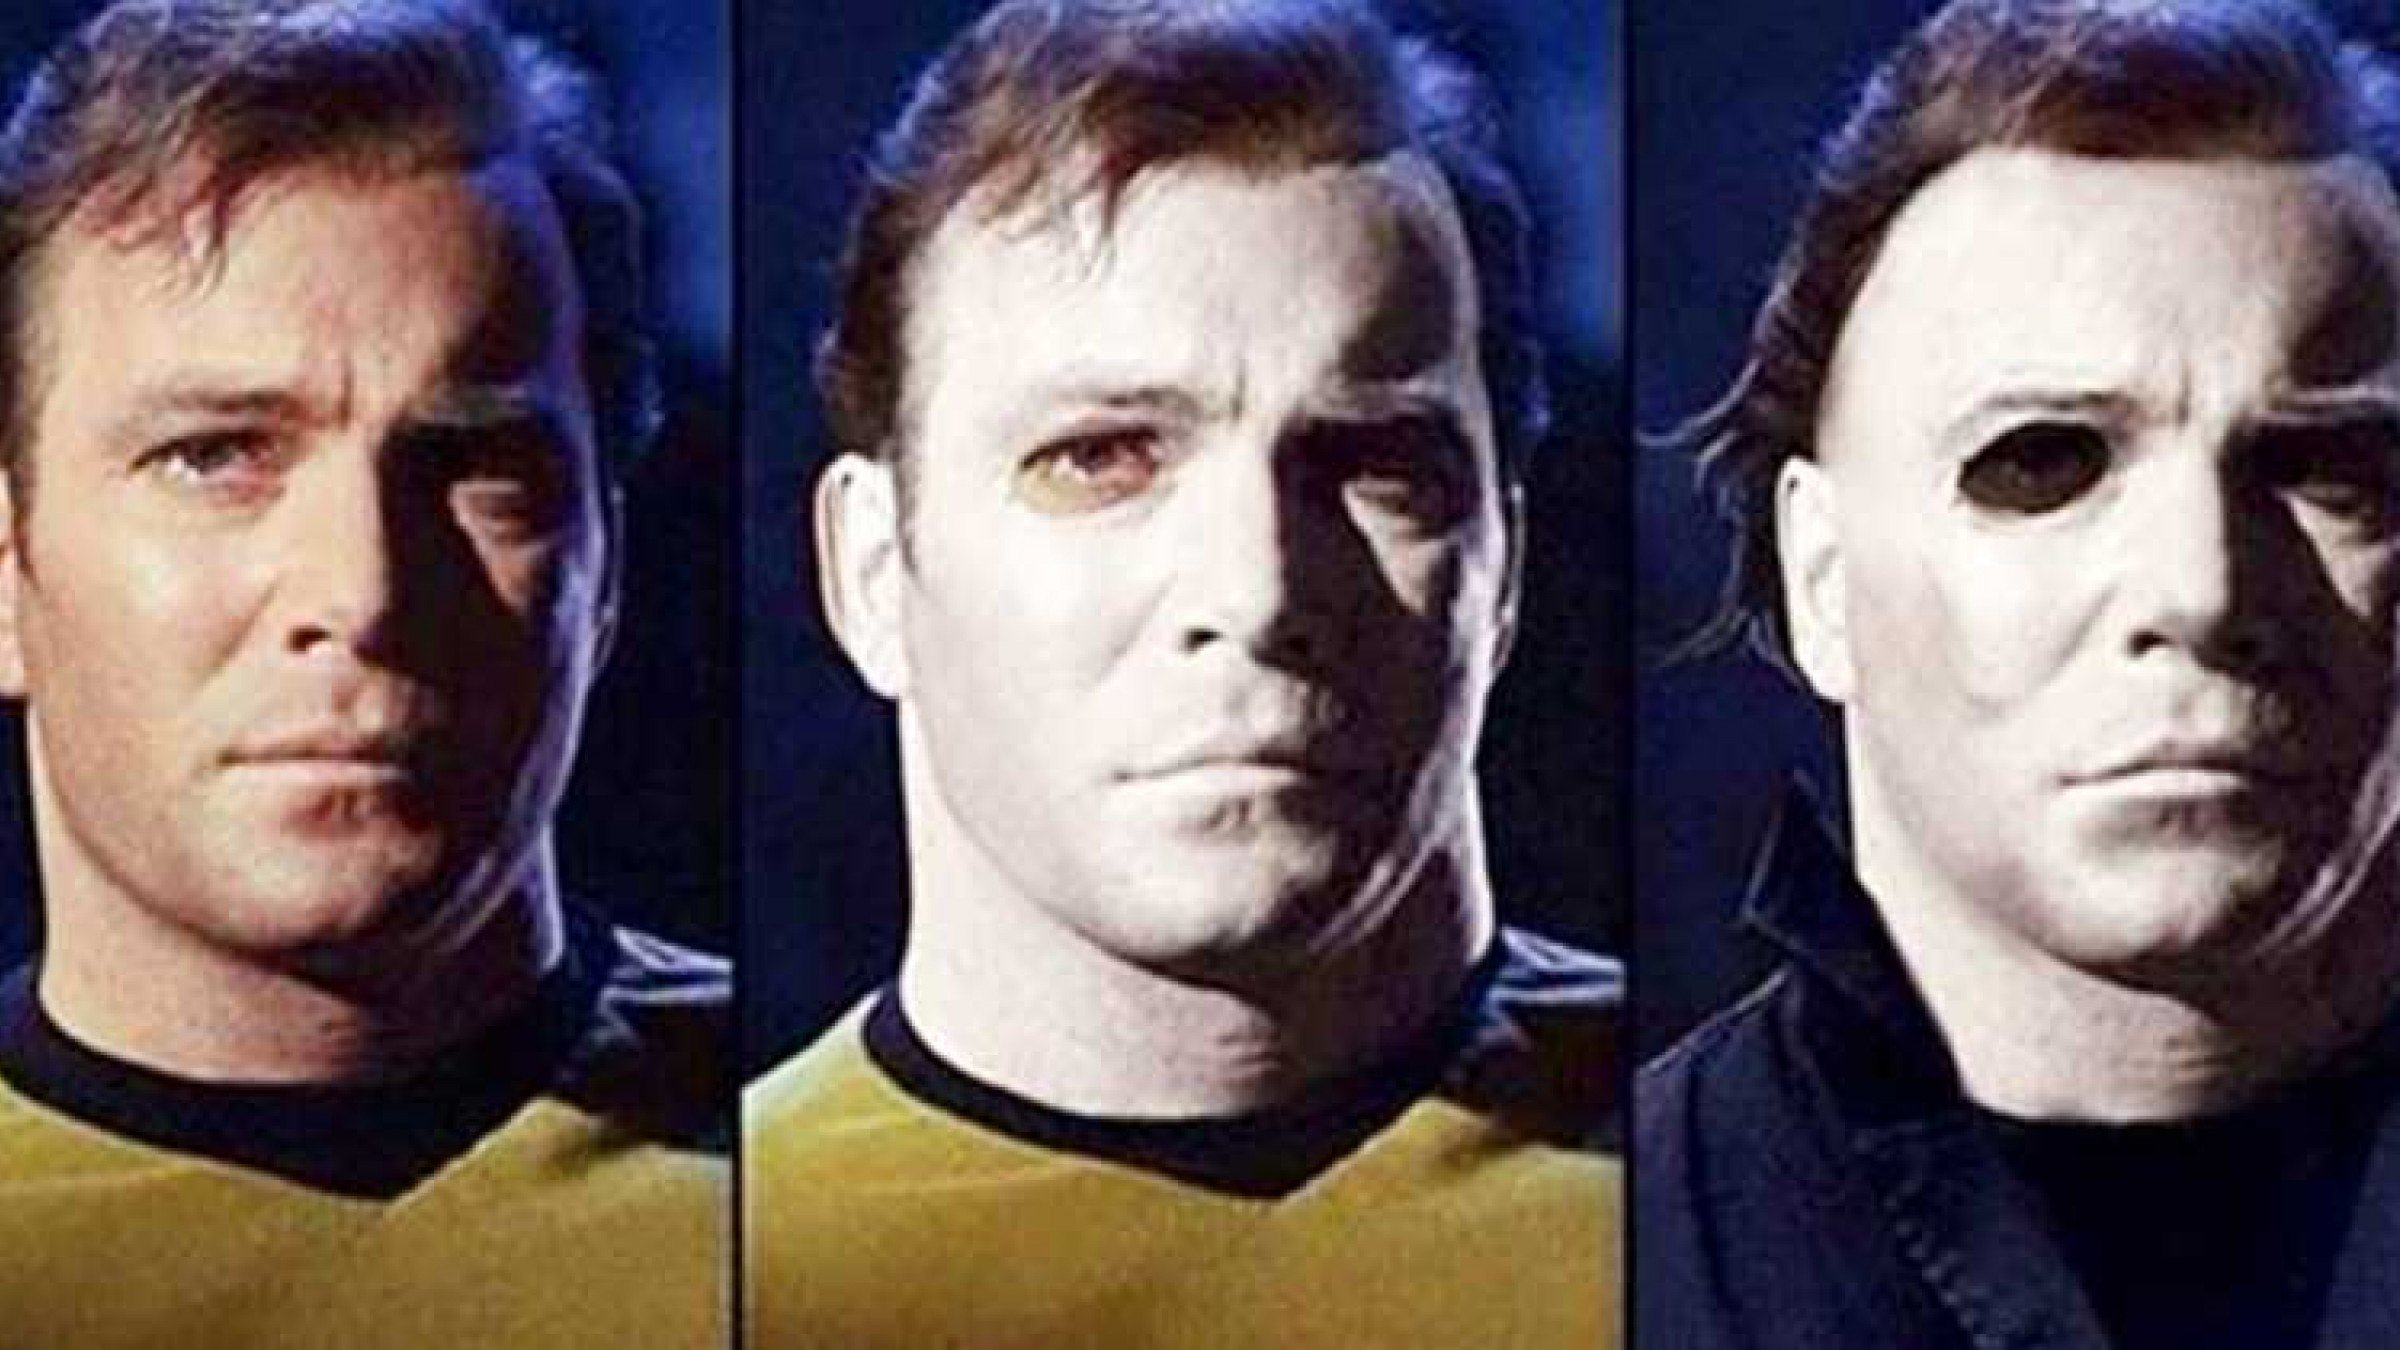 Is The Michael Myers Mask William Shatner